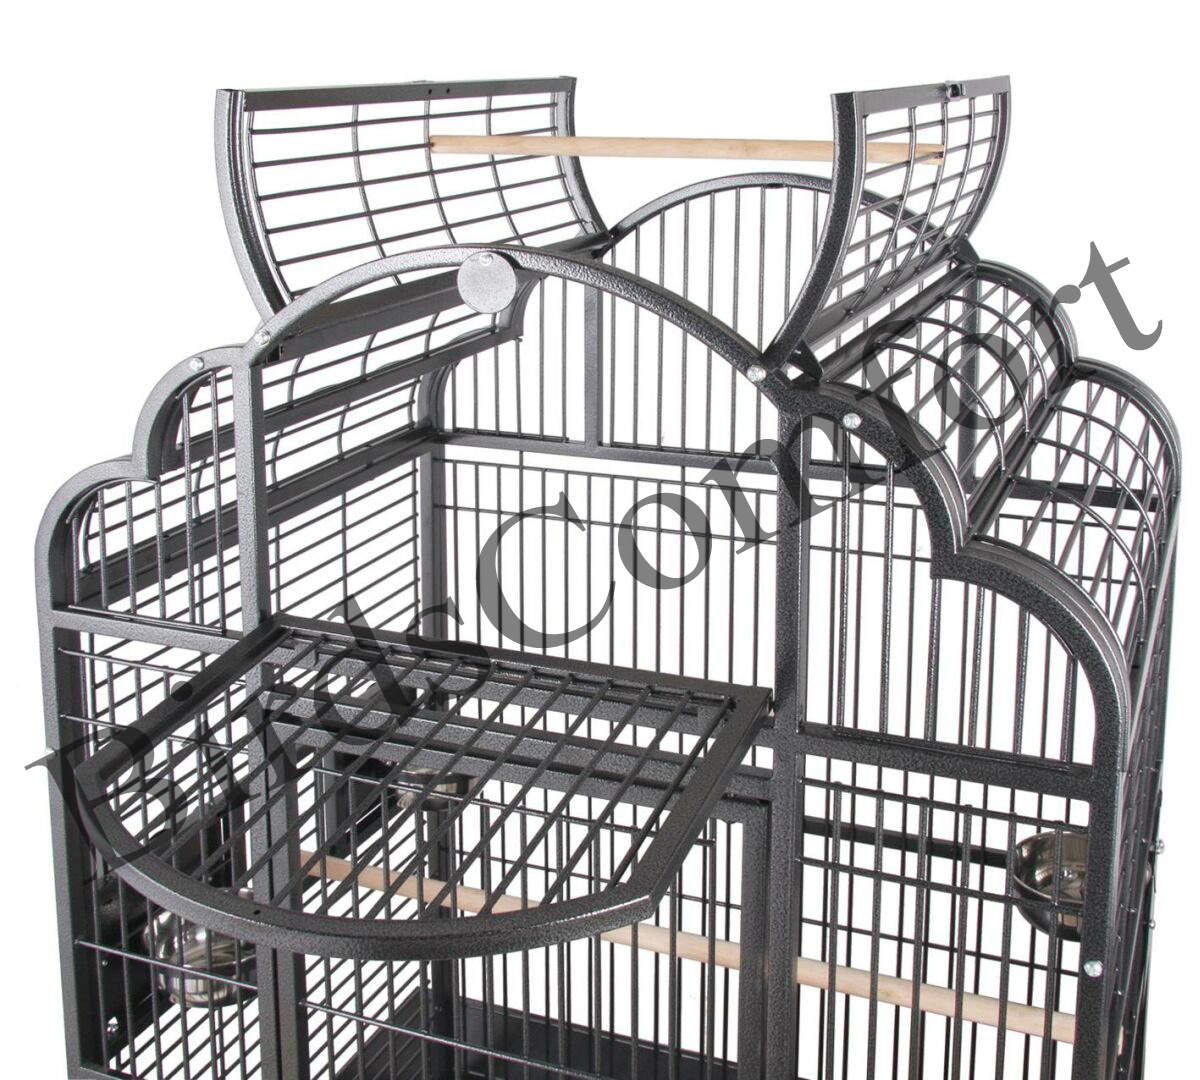 Hq Parrot Bird Cages Gb92422a Victorian Top 24x22 Toy Toys